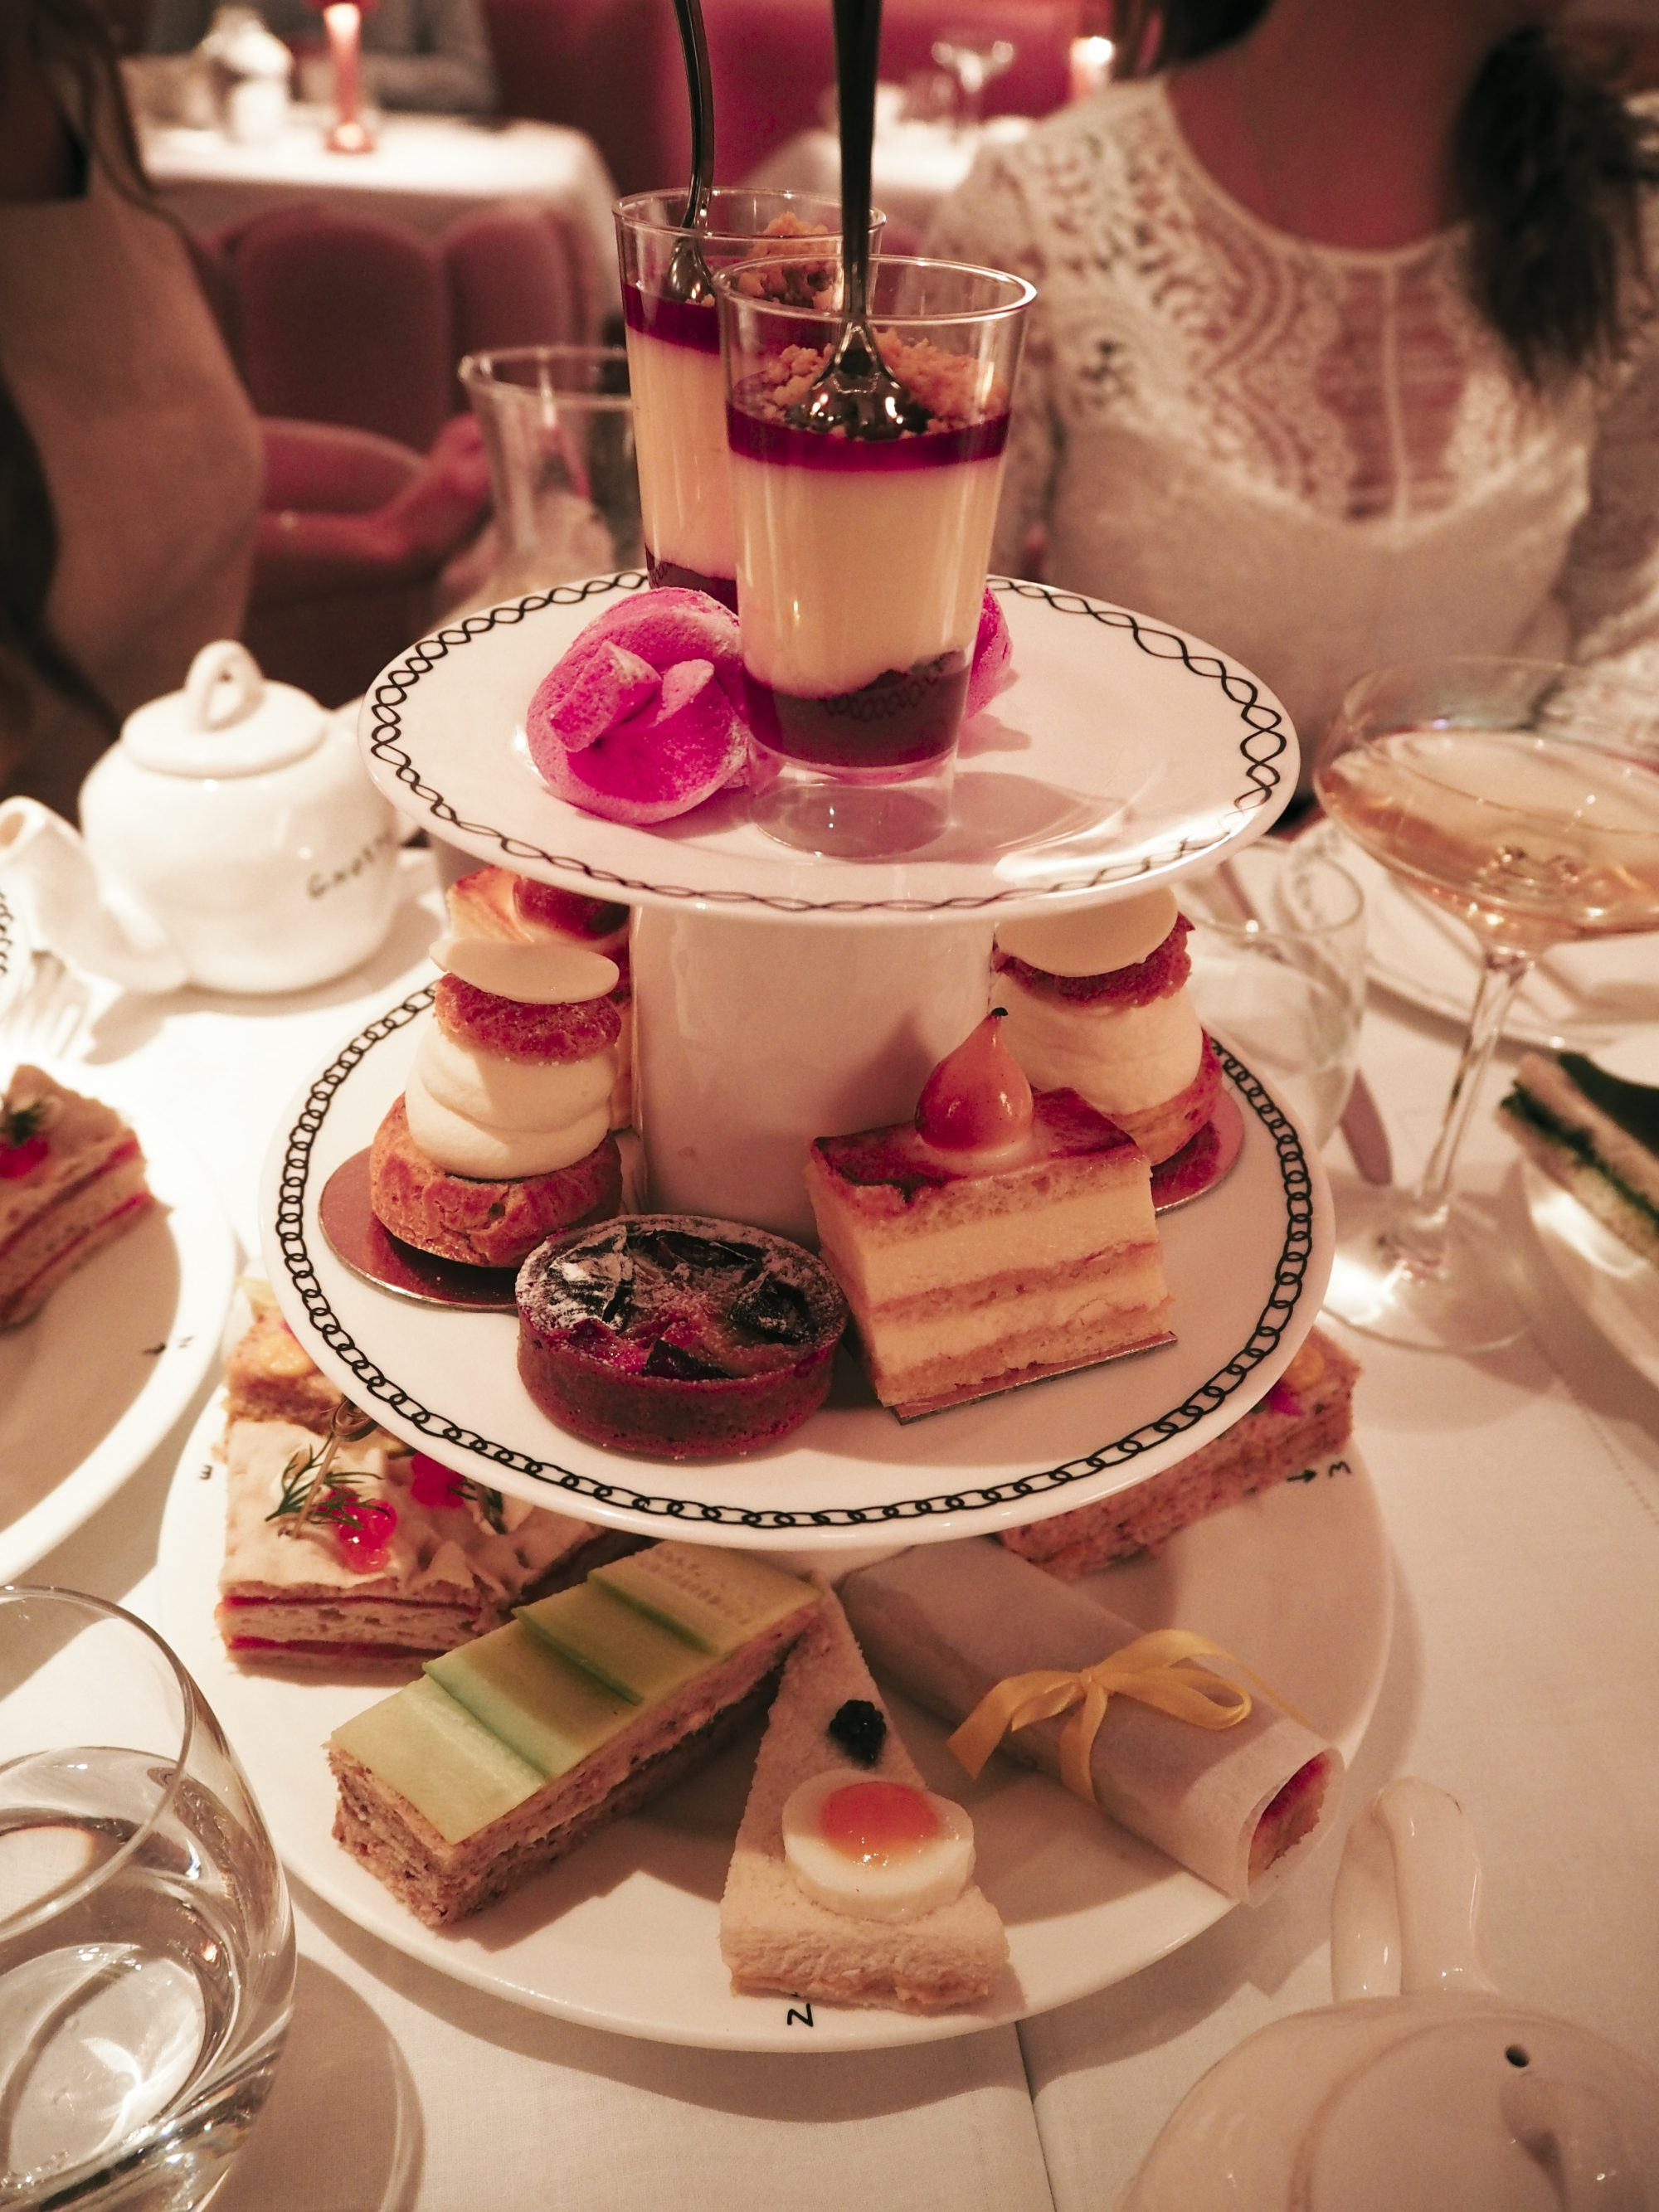 Whitney's Wonderland UK Top Luxury Lifestyle Blogger review of afternoon tea at Sketch, London